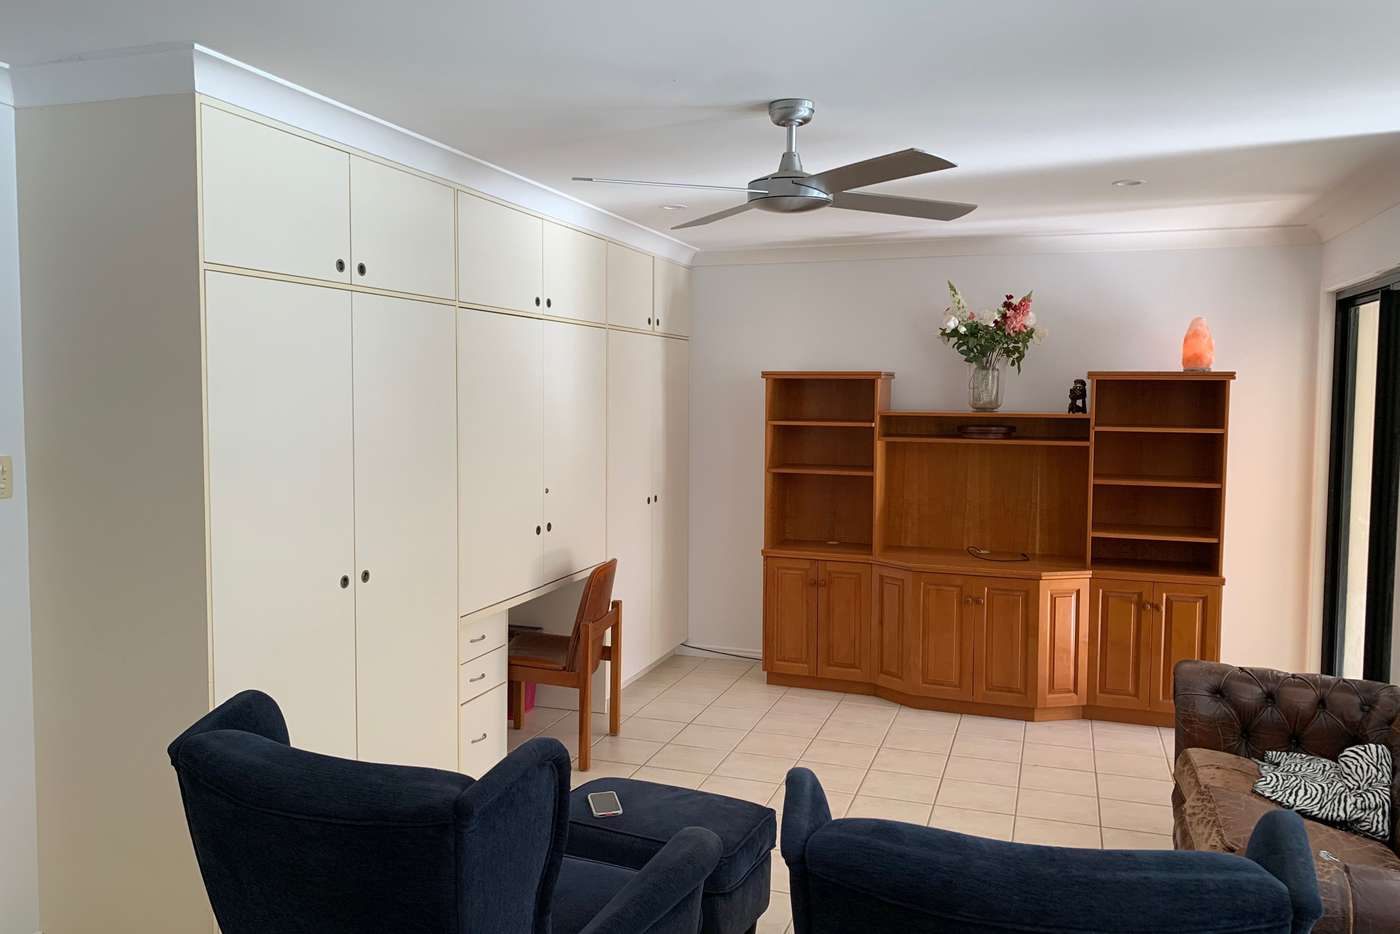 Seventh view of Homely house listing, 16 Ivy Court, Buderim QLD 4556